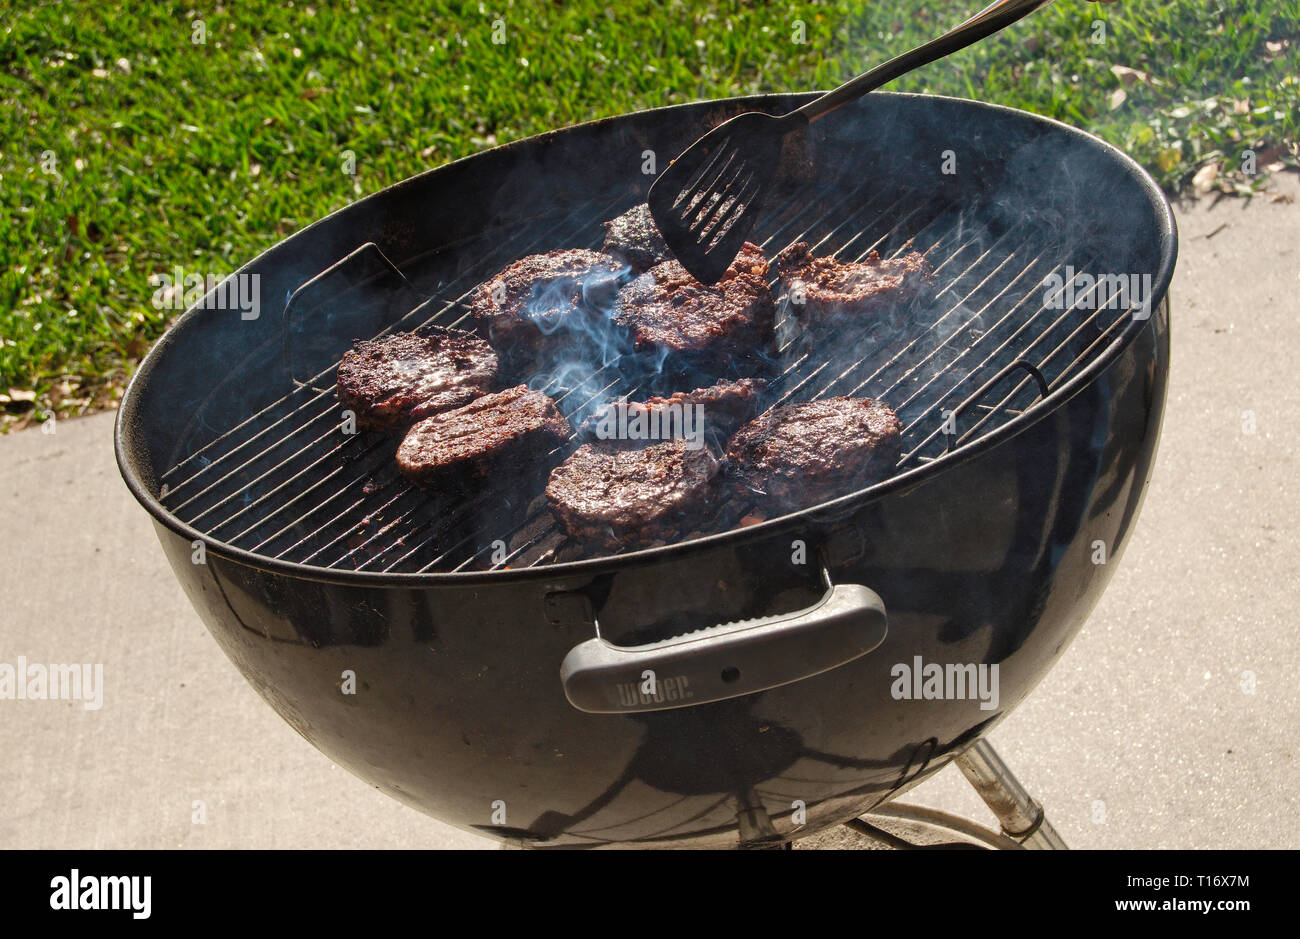 Man cooking hamburger patties on black grill - Stock Image